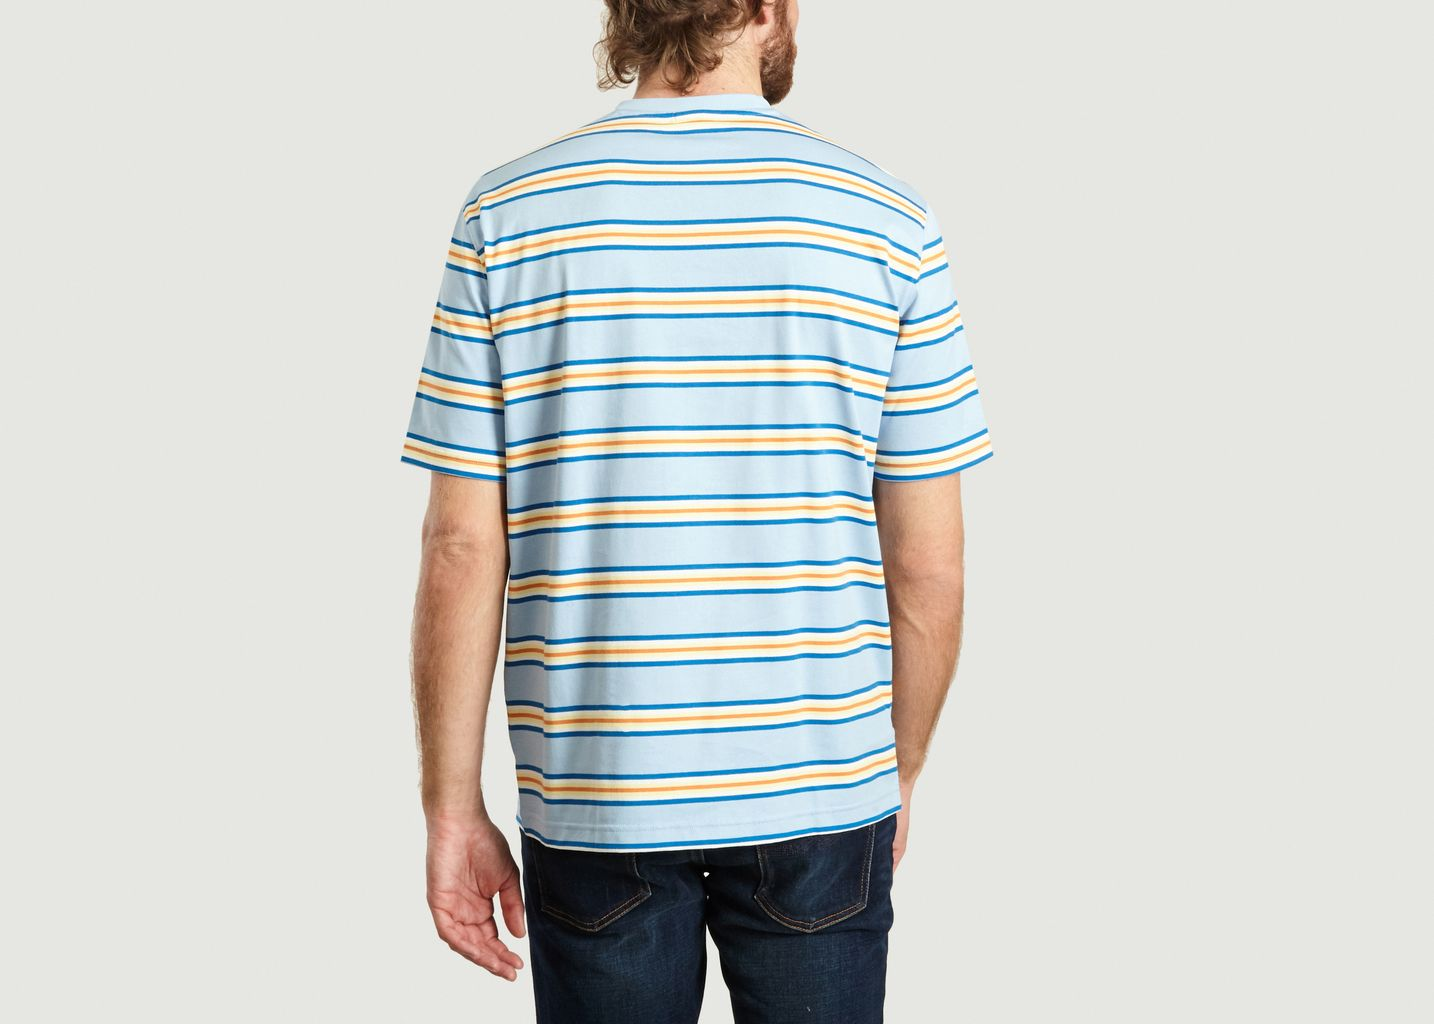 ea321651 Striped T-shirt